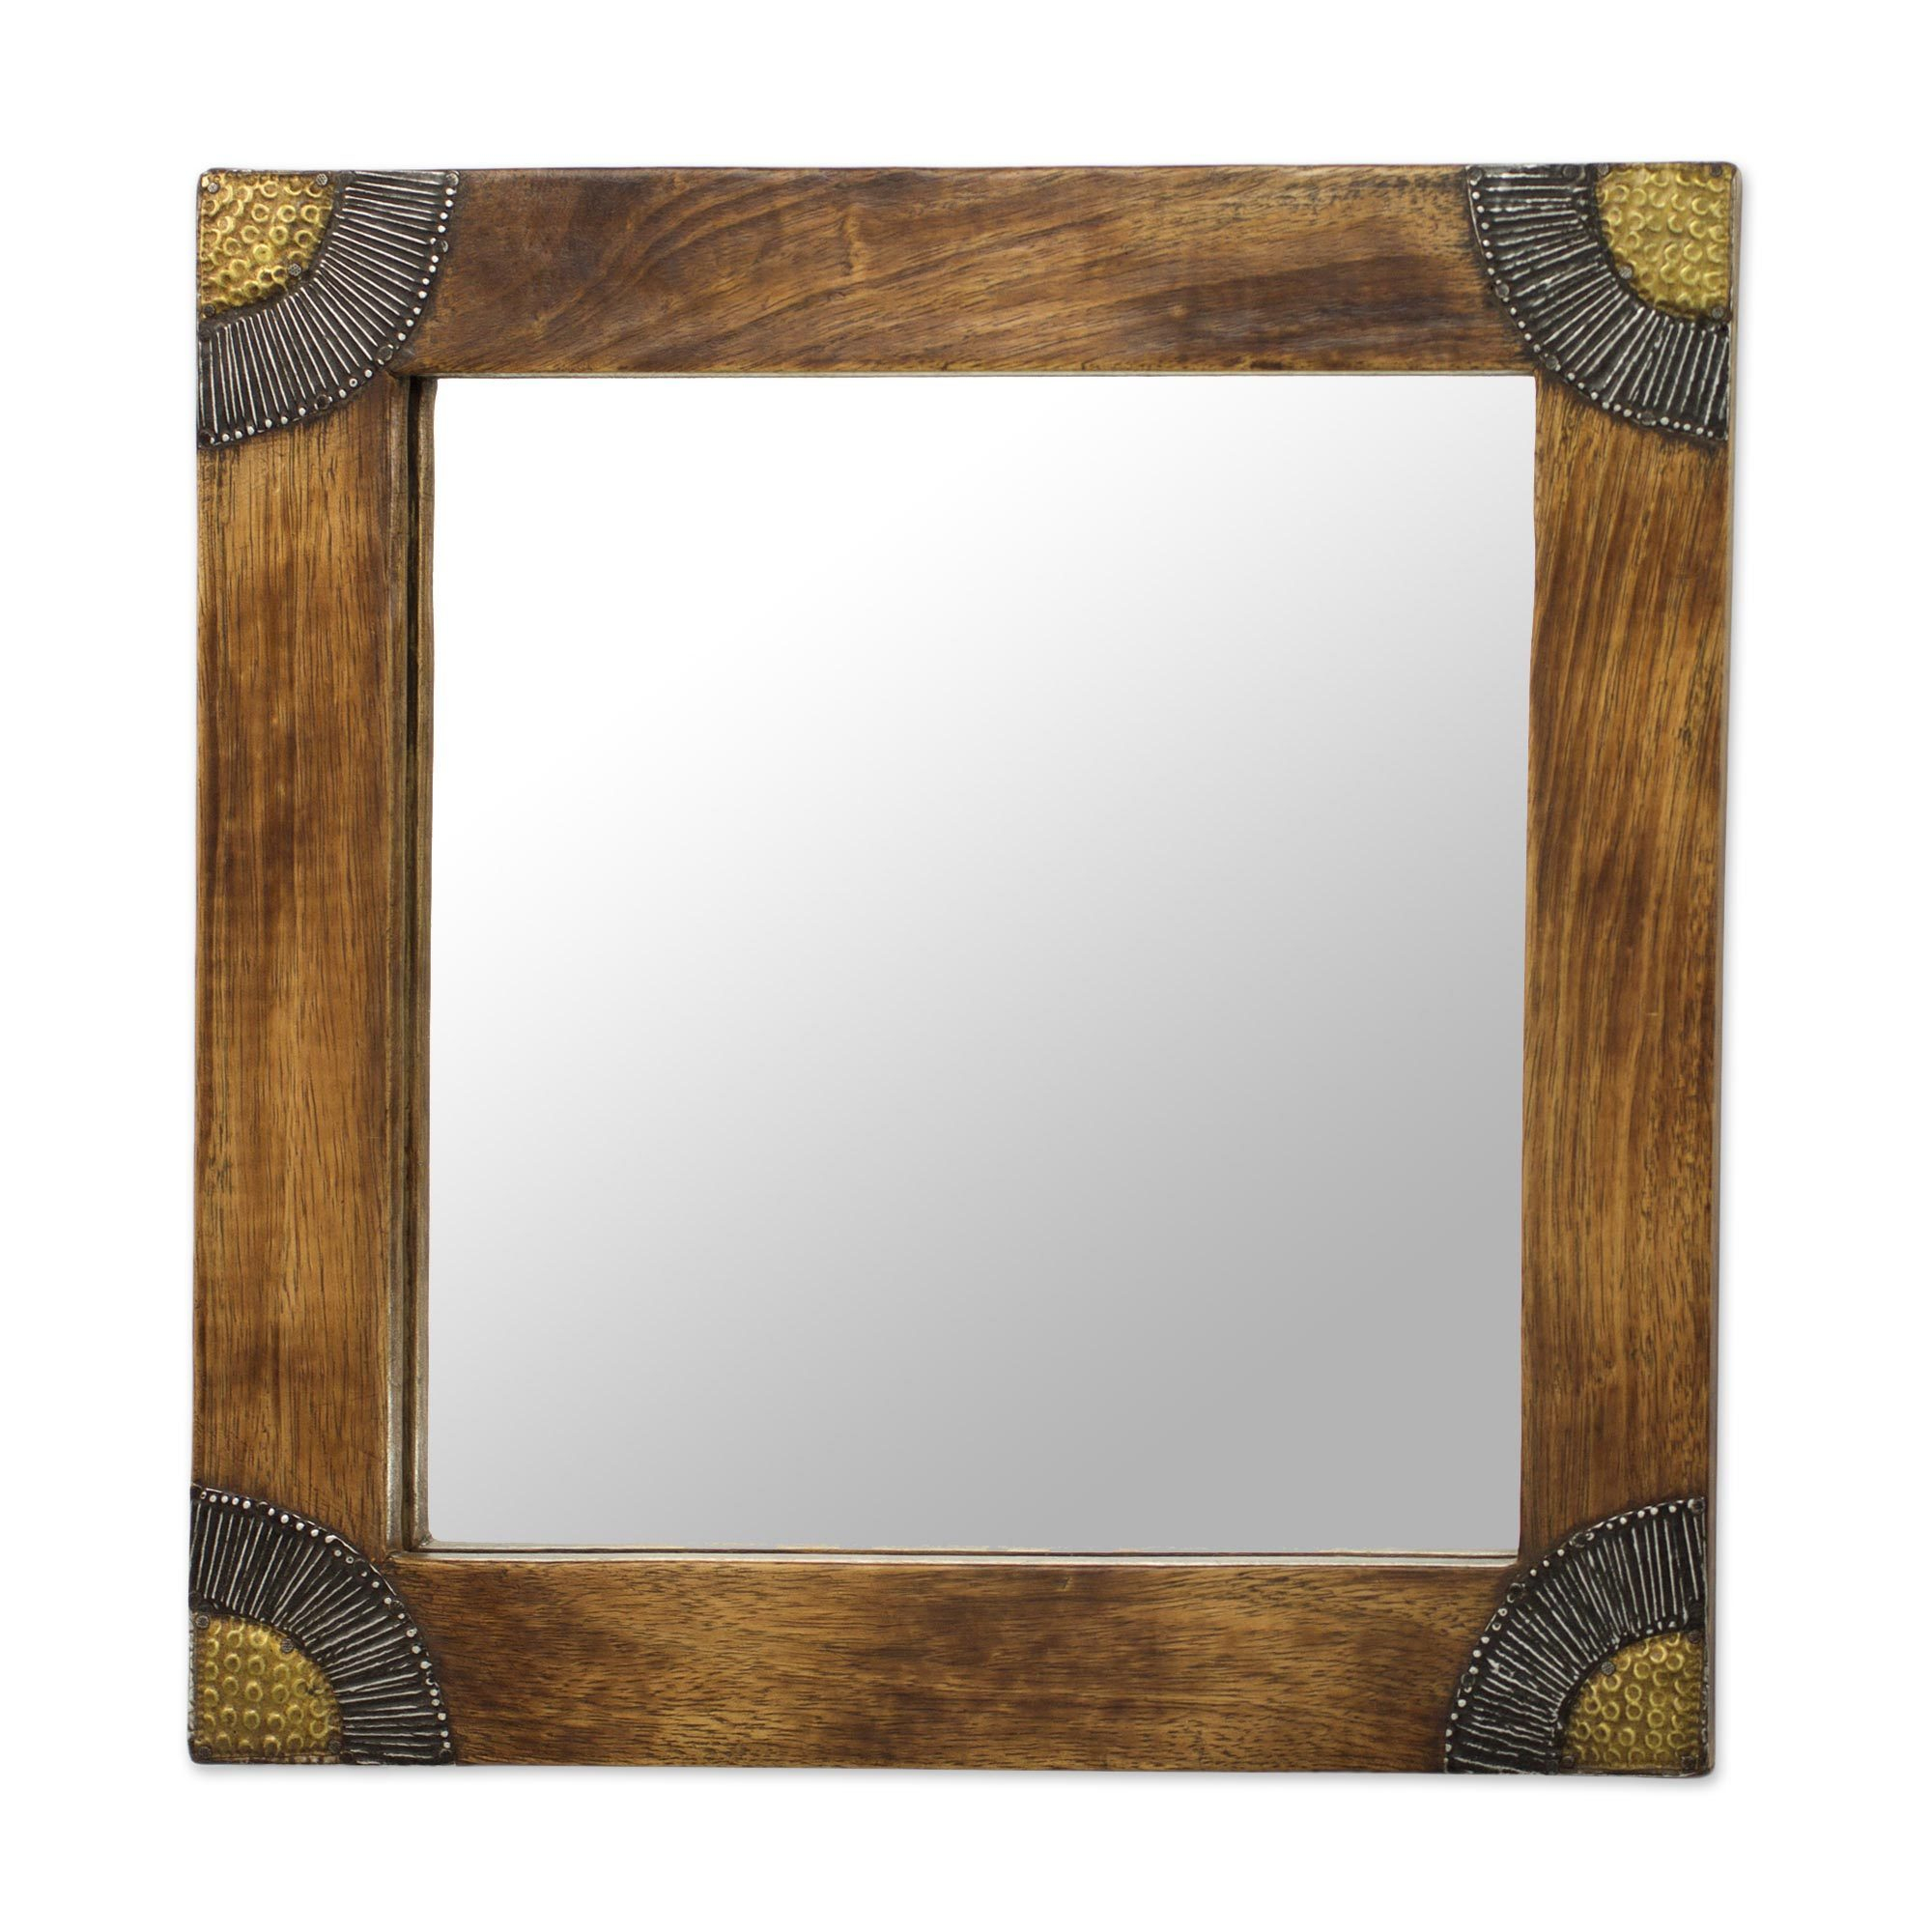 Buy Glass, Square Mirrors Online At Overstock | Our Best Intended For Lidya Frameless Beveled Wall Mirrors (Image 9 of 20)